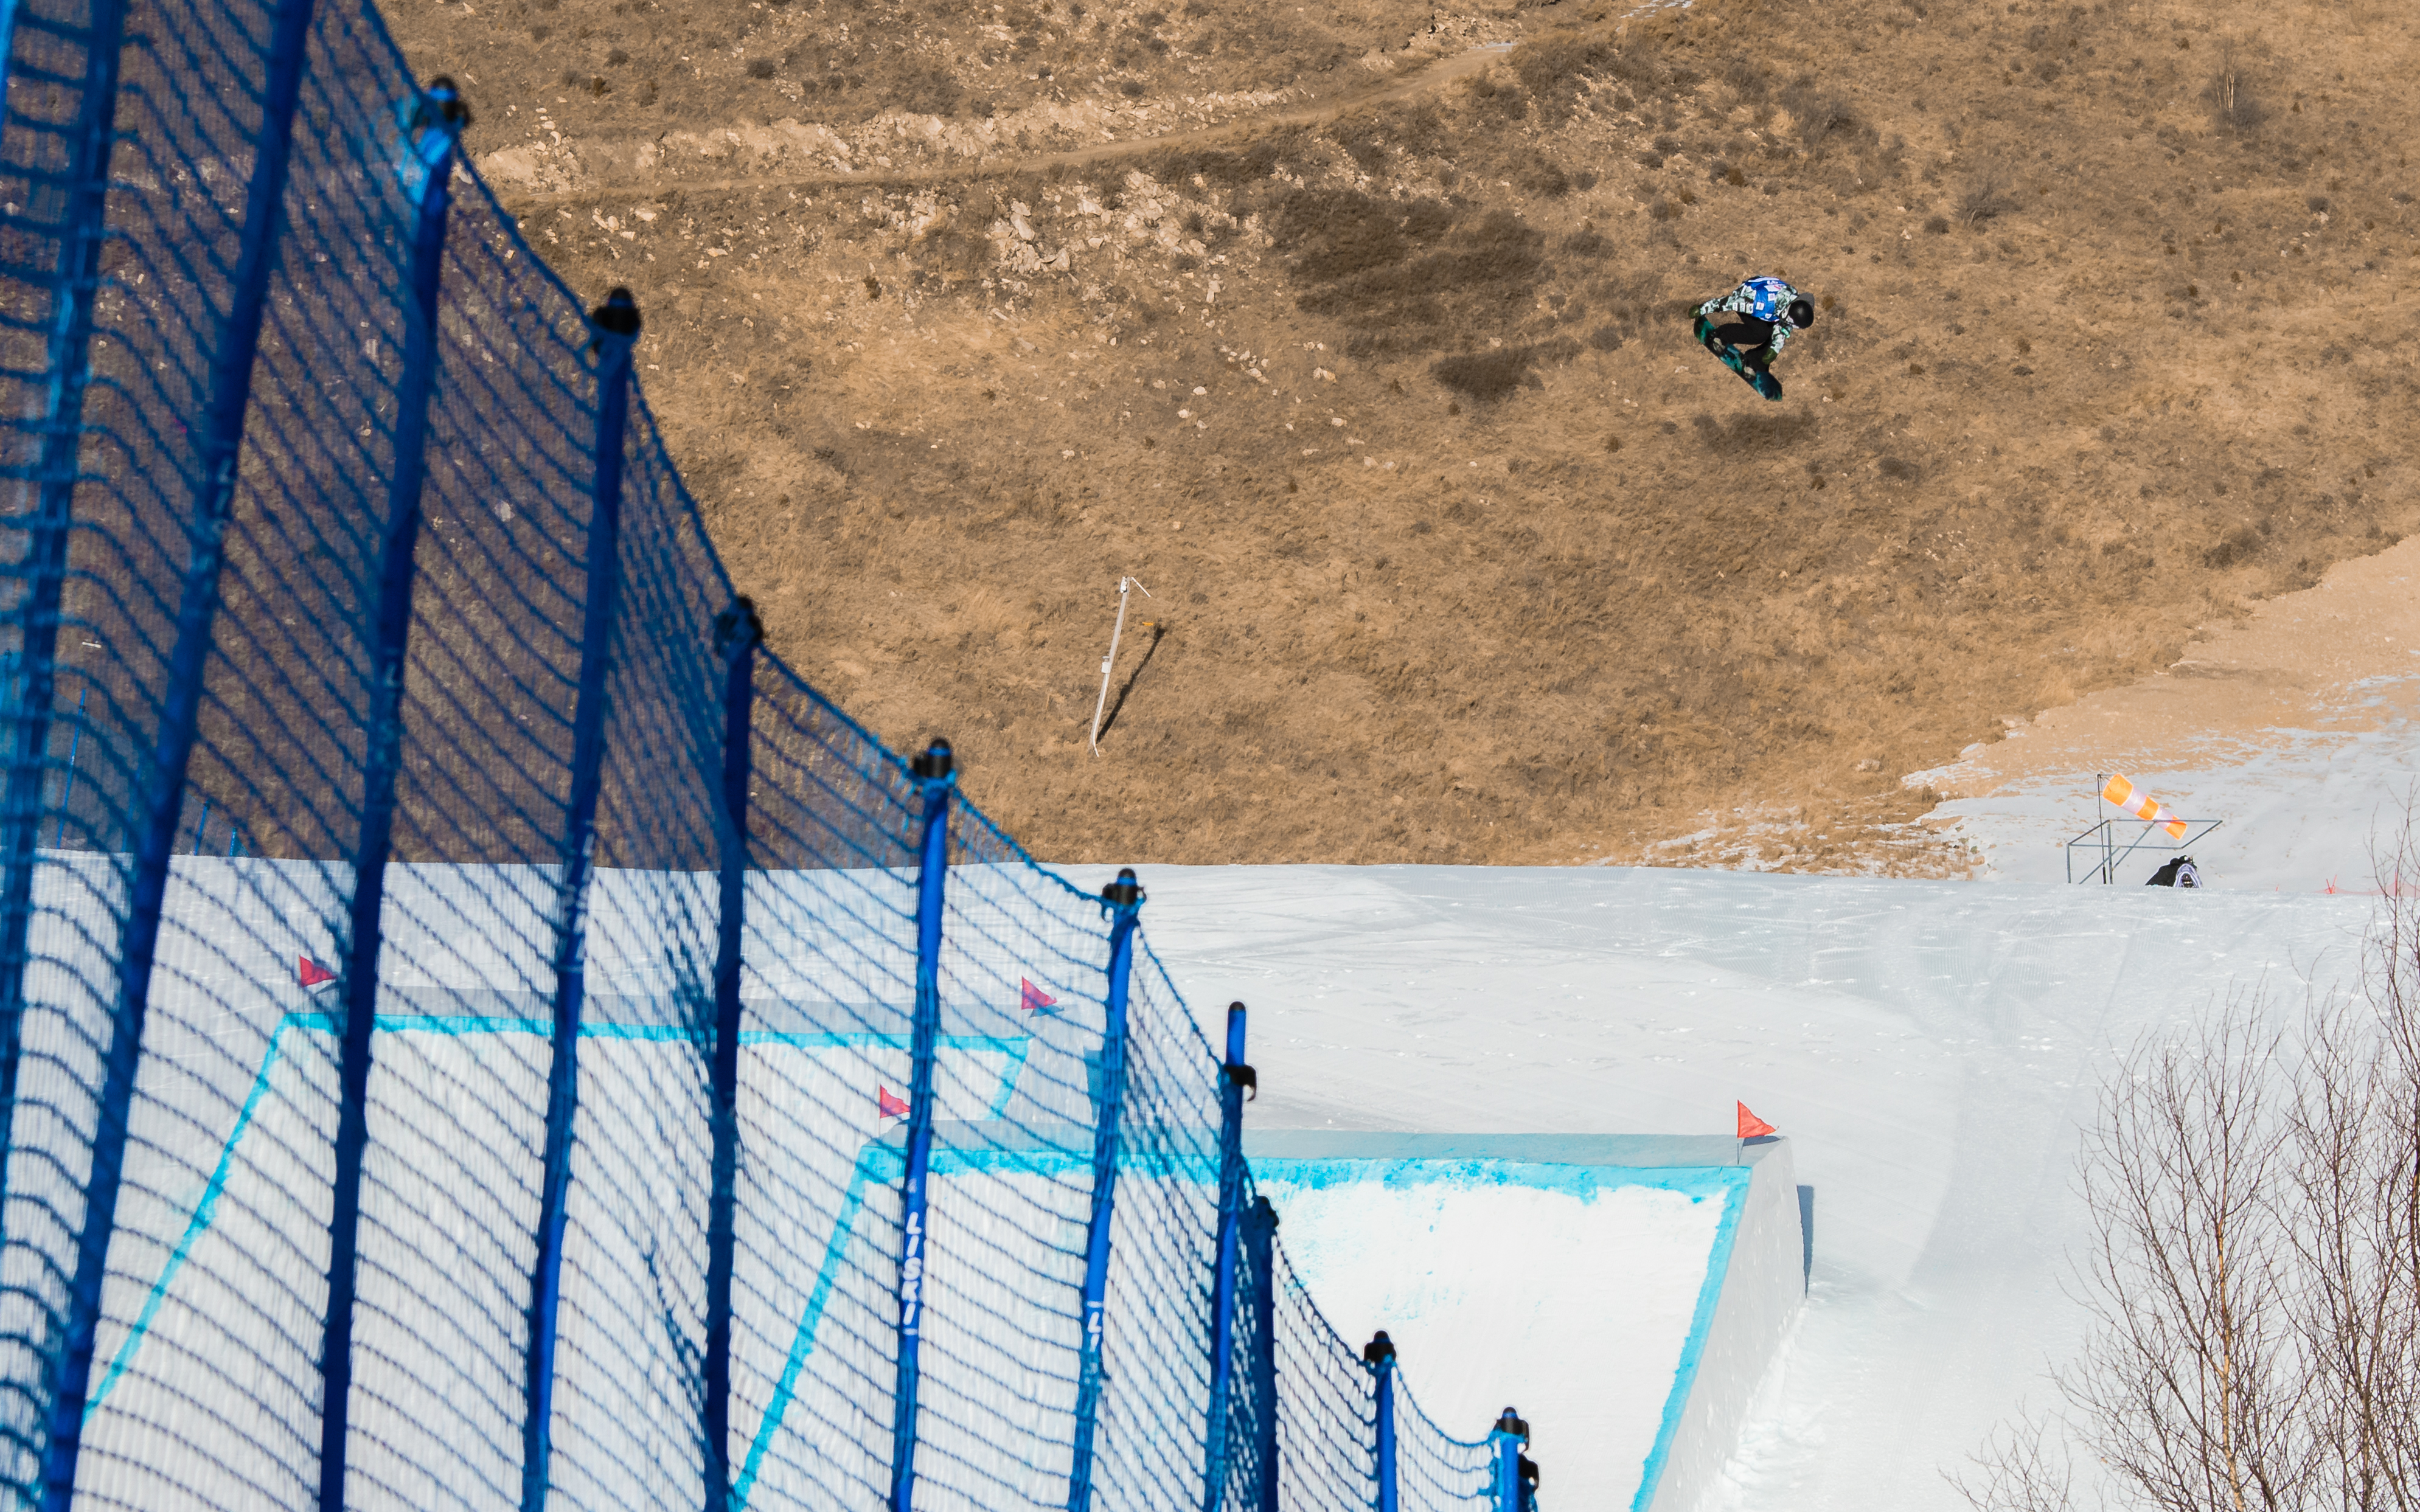 Hiroaki Kunitake cab-12 over the first kicker during the  FIS World Cup Secret Garden slopestyle event in China.